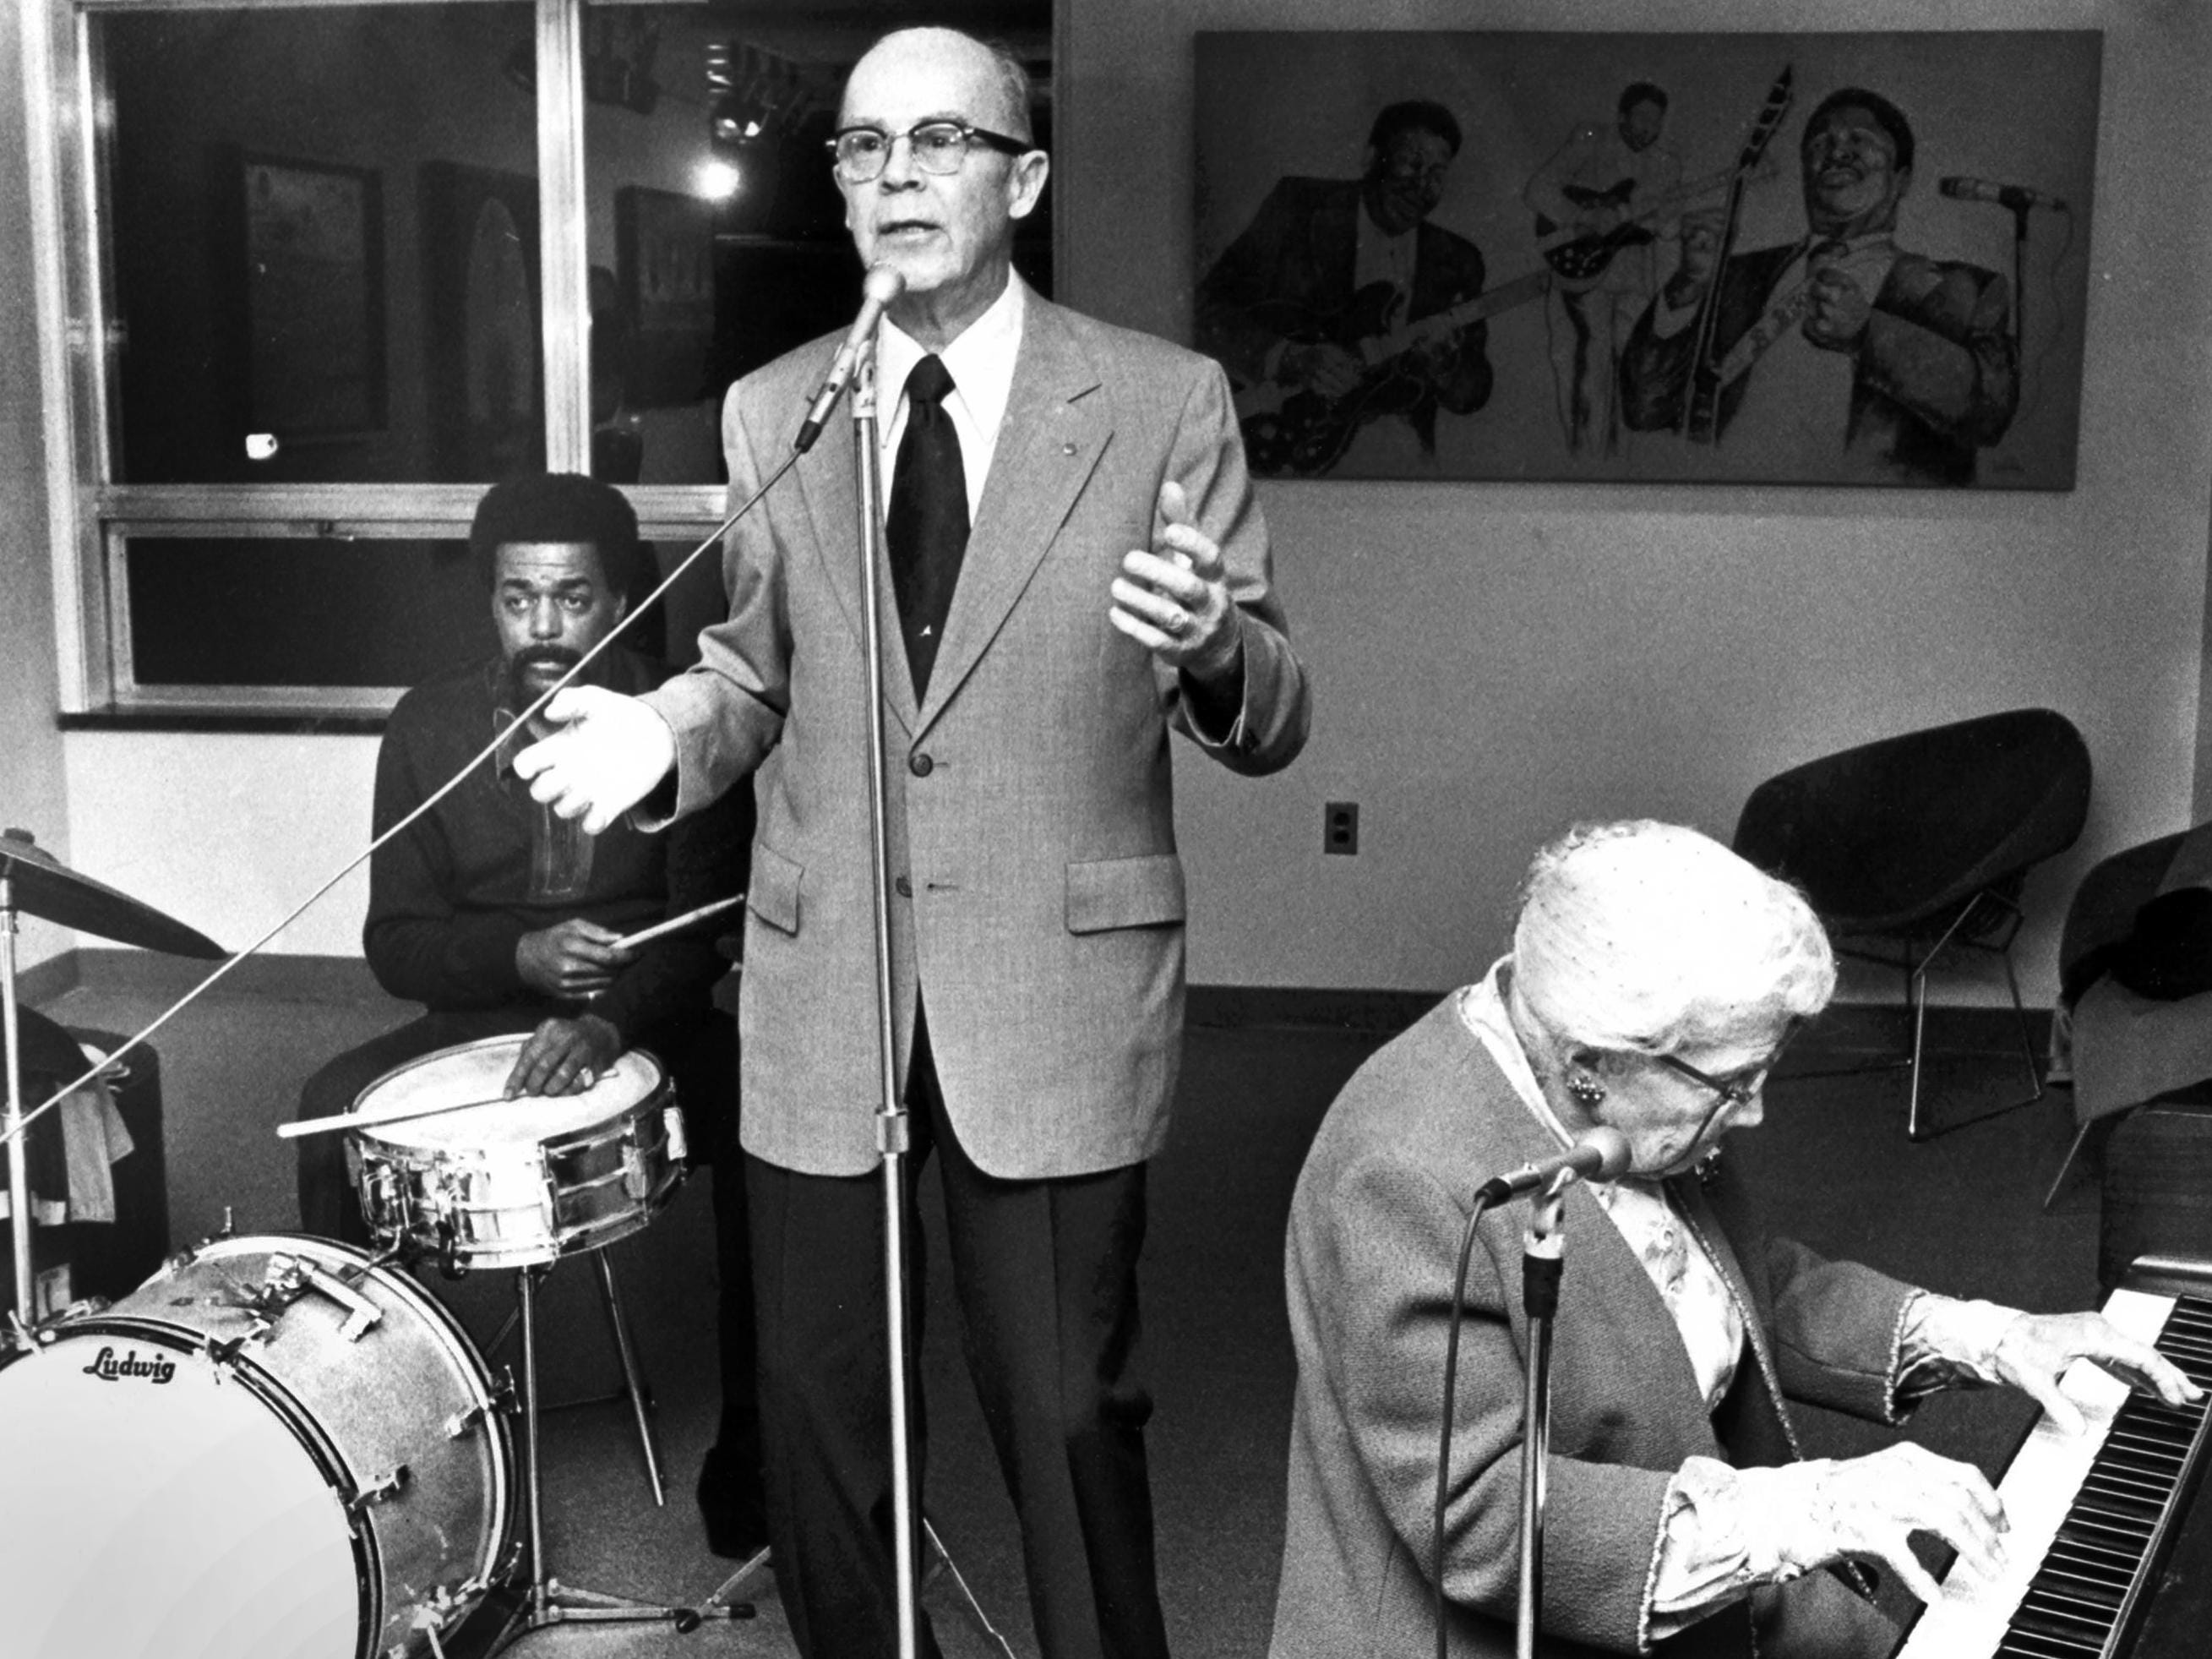 """February 12, 1979 - Harry Godwin (center) introduces Jeff Greer (left) on drums and Lillian """"Grandma Dixie"""" Davis, 82, on piano to an audience of about 50 people at the Public Library and Information Center at Peabody and McLean on Feb. 12, 1979. Miss Davis, who began playing the piano at age eight, thrilled the crowd with blues and ragtime numbers."""